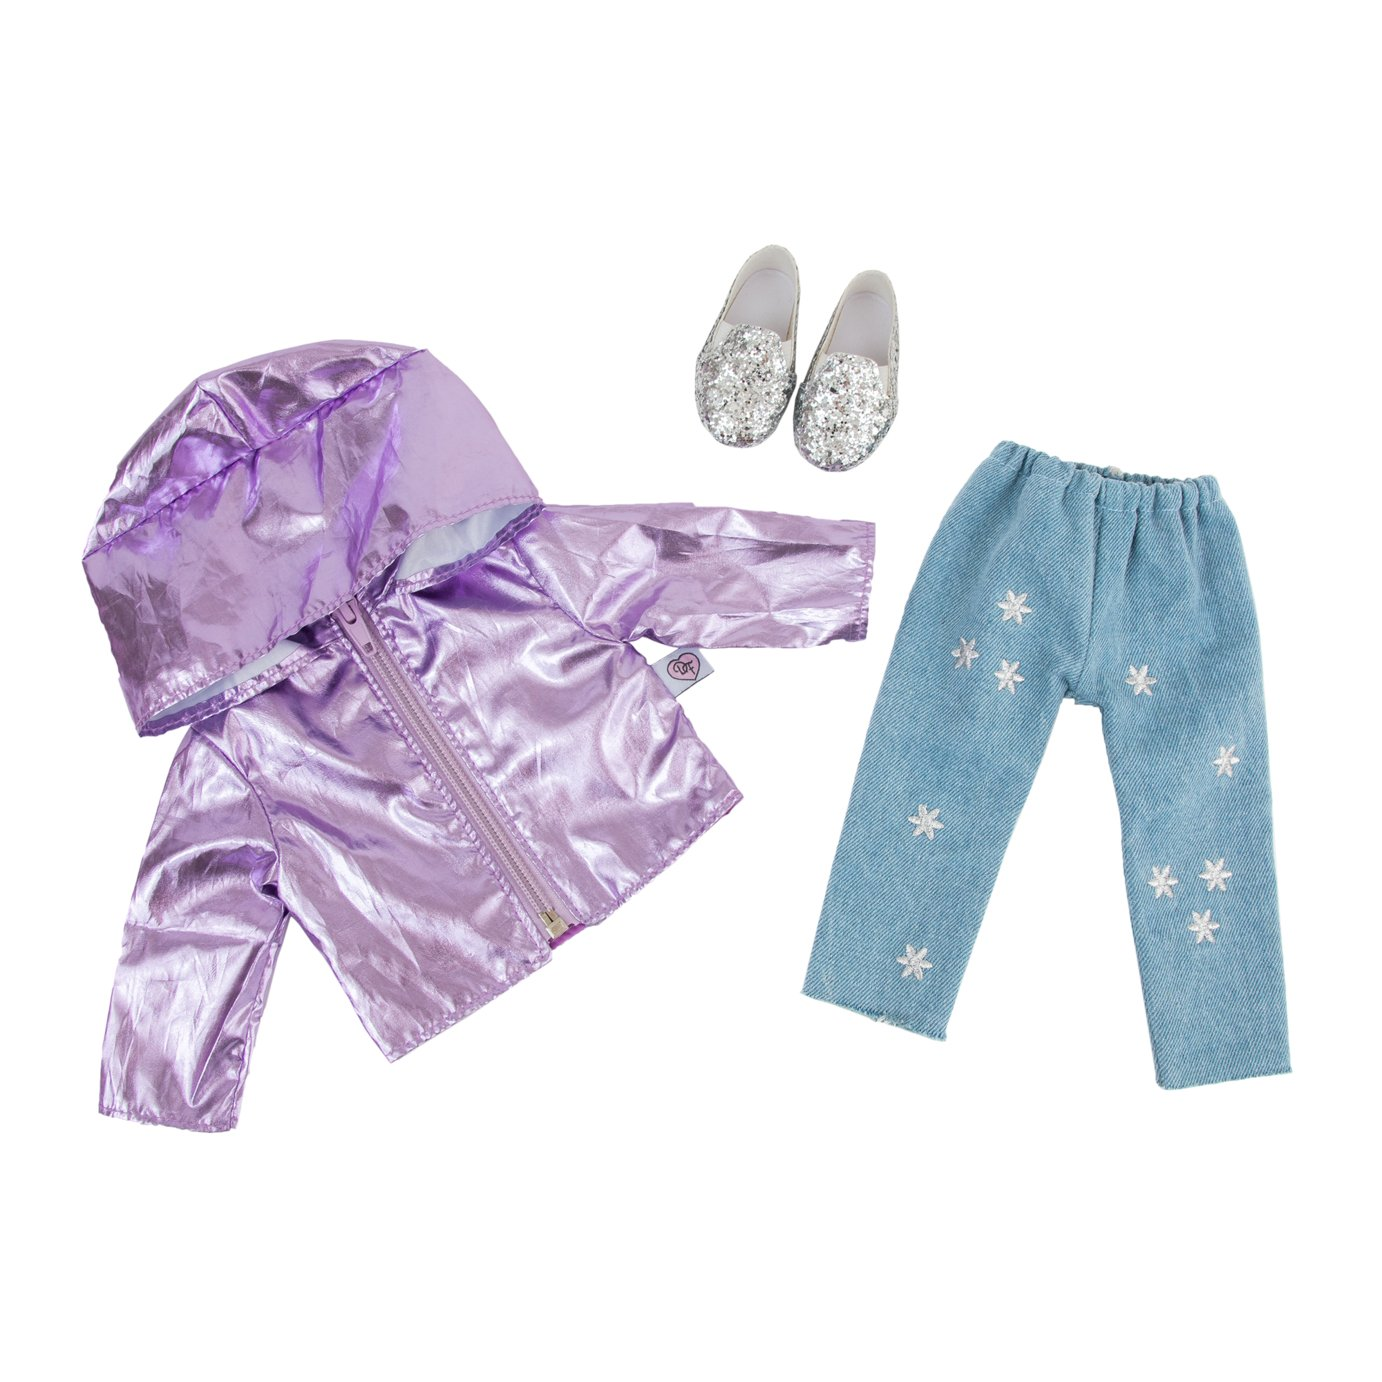 Chad Valley Designafriend Shimmer Shower Outfit